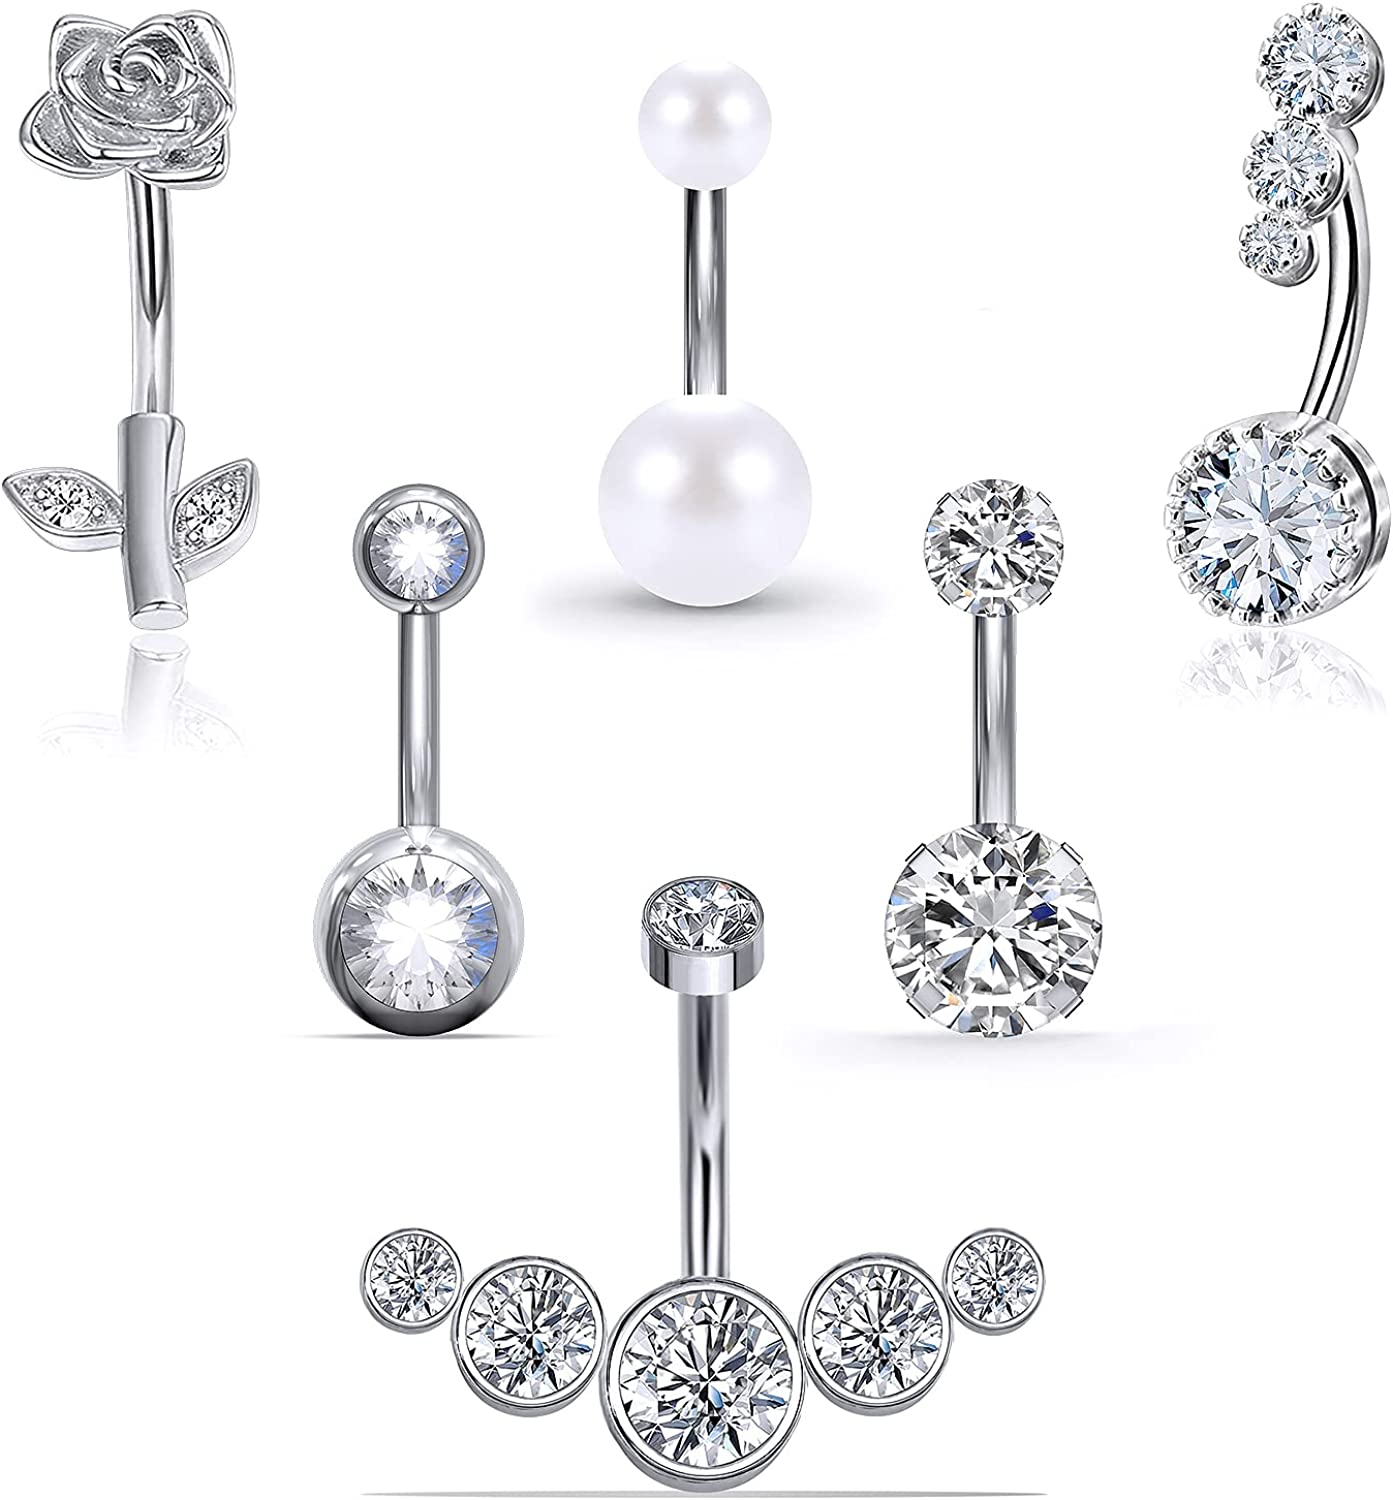 Pnsgisr Belly Button Rings Belly Rings Belly Button Rings Dangle Belly Button Rings Surgical Steel Belly Ring Belly Button Ring Belly Piercing Dangle Belly Button Rings Belly Rings for Women Navel 14G